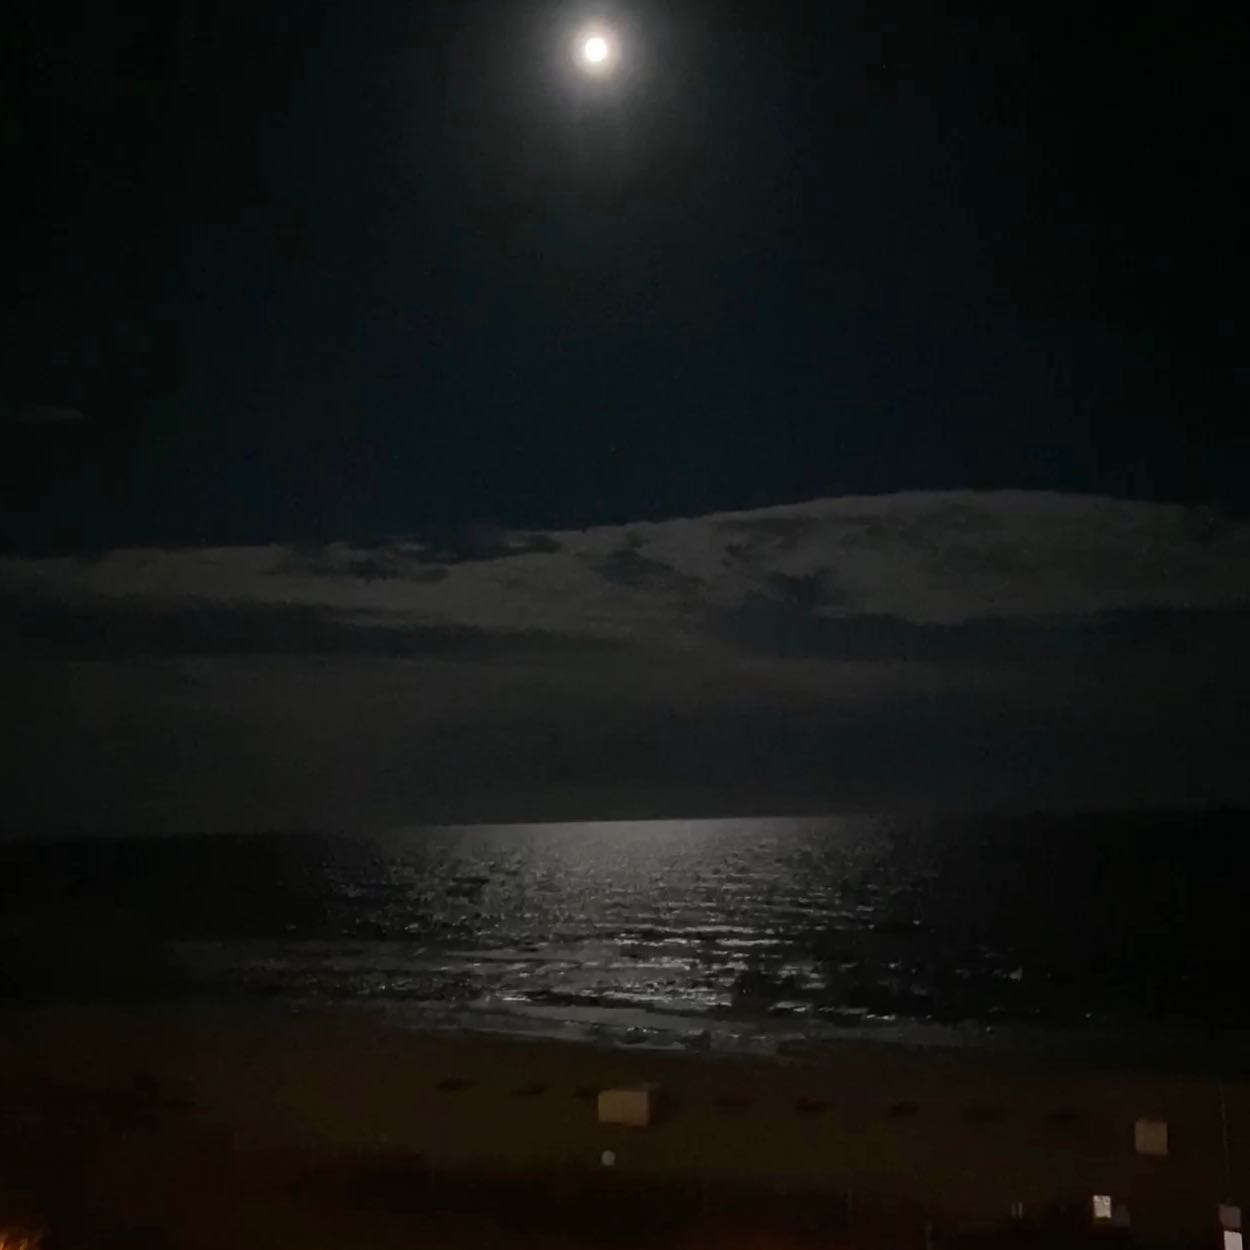 Full moon over the ocean- thunder storm at the beach is so beautiful to watch on the front porch. Come see the view yourself!! #beachtrips #familyvacations #summerstorms #fullmoonatbeach